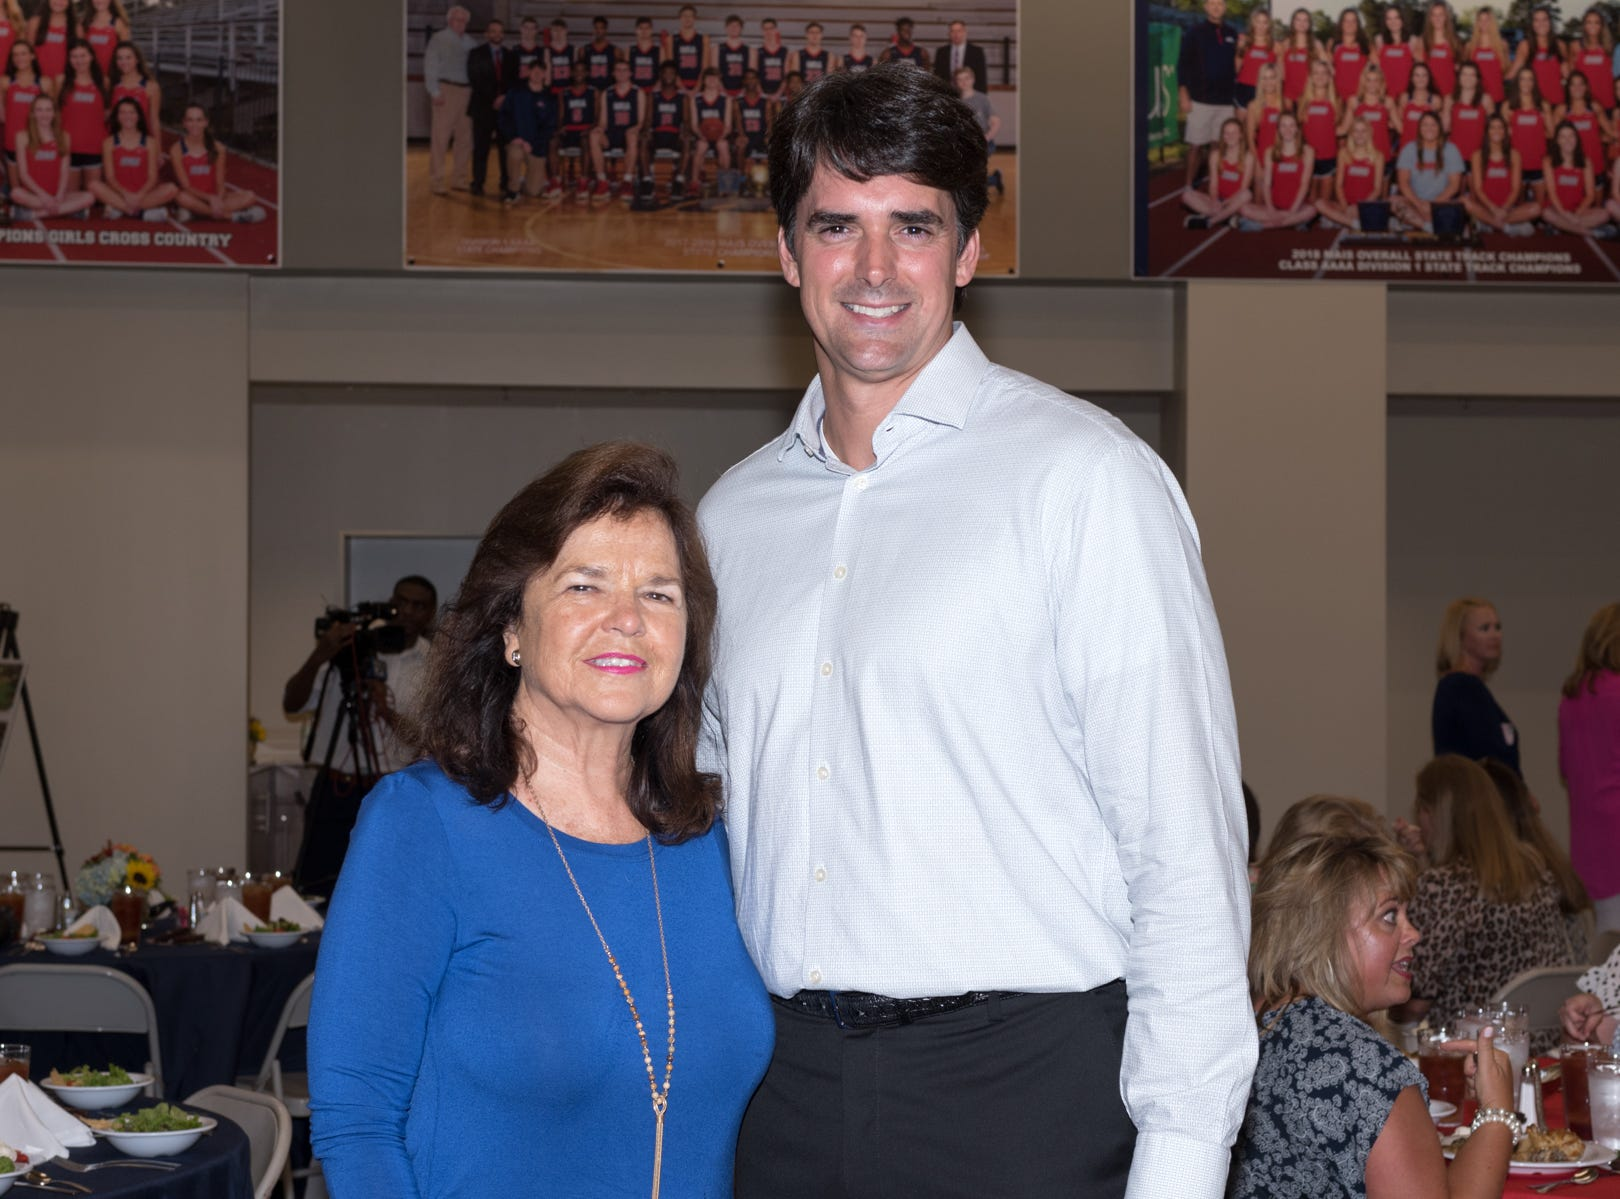 Madison Alderman and former MRA Principal Pat Peele, left, and Brad Gatlin, MRA alumnus and Board of Trustees member, attended the event.